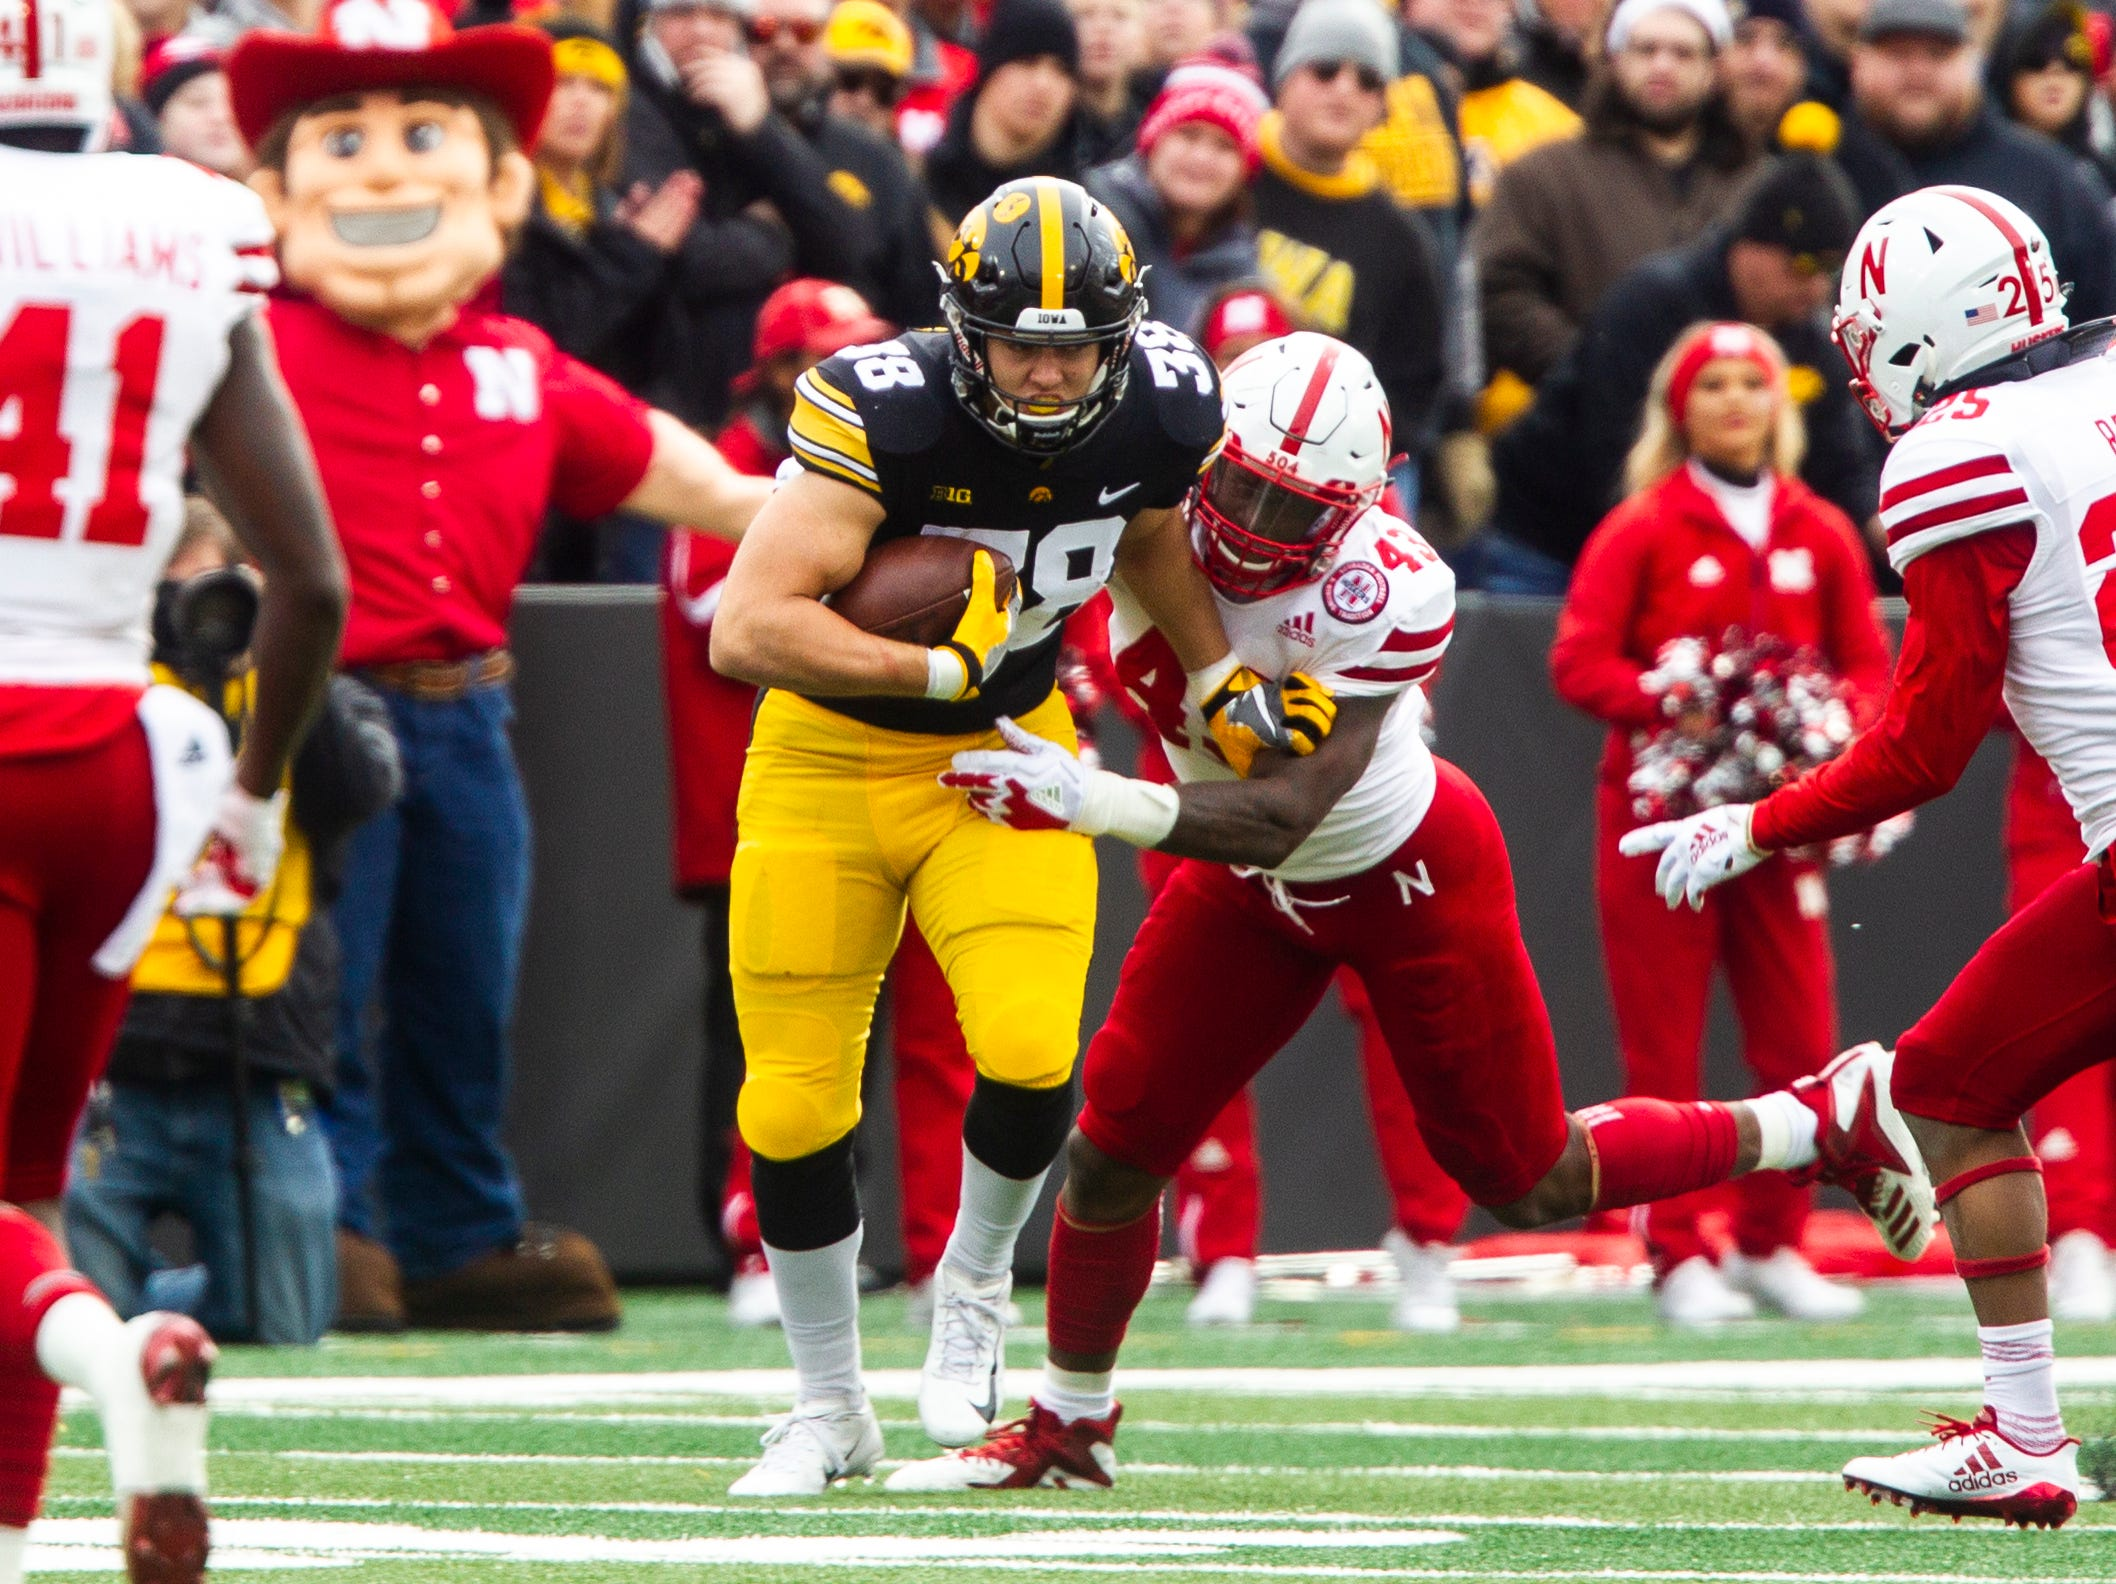 Iowa tight end T.J. Hockenson (38) gets tackled by Nebraska's Tyrin Ferguson (43) during a Big Ten Conference NCAA football game on Friday, Nov. 23, 2018, at Kinnick Stadium in Iowa City.